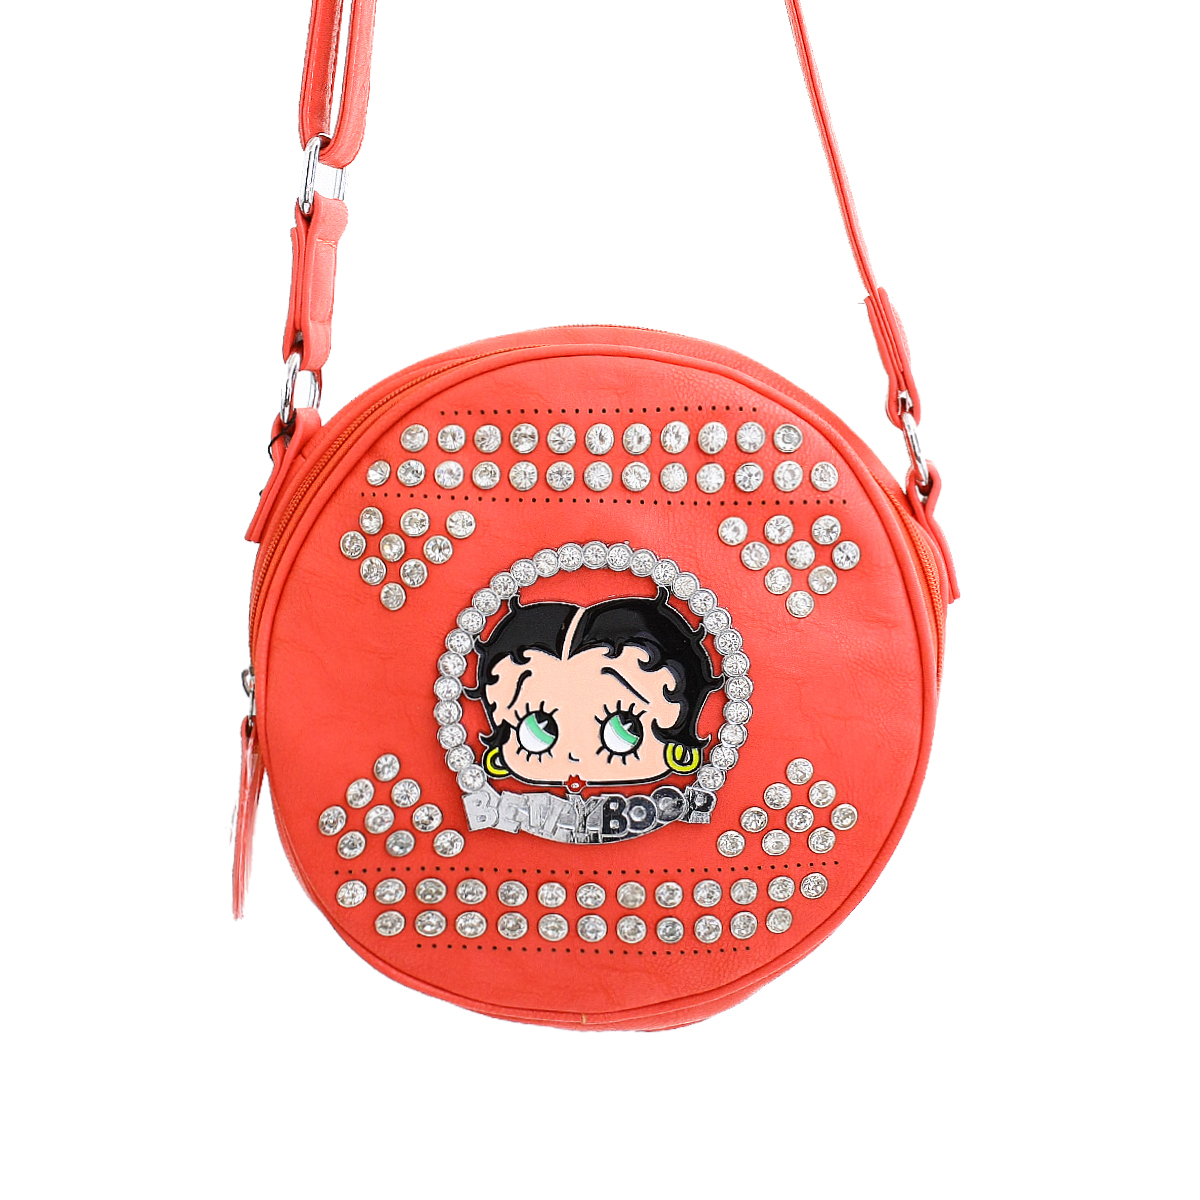 c6bff1b177 Betty Boop Purses Collection